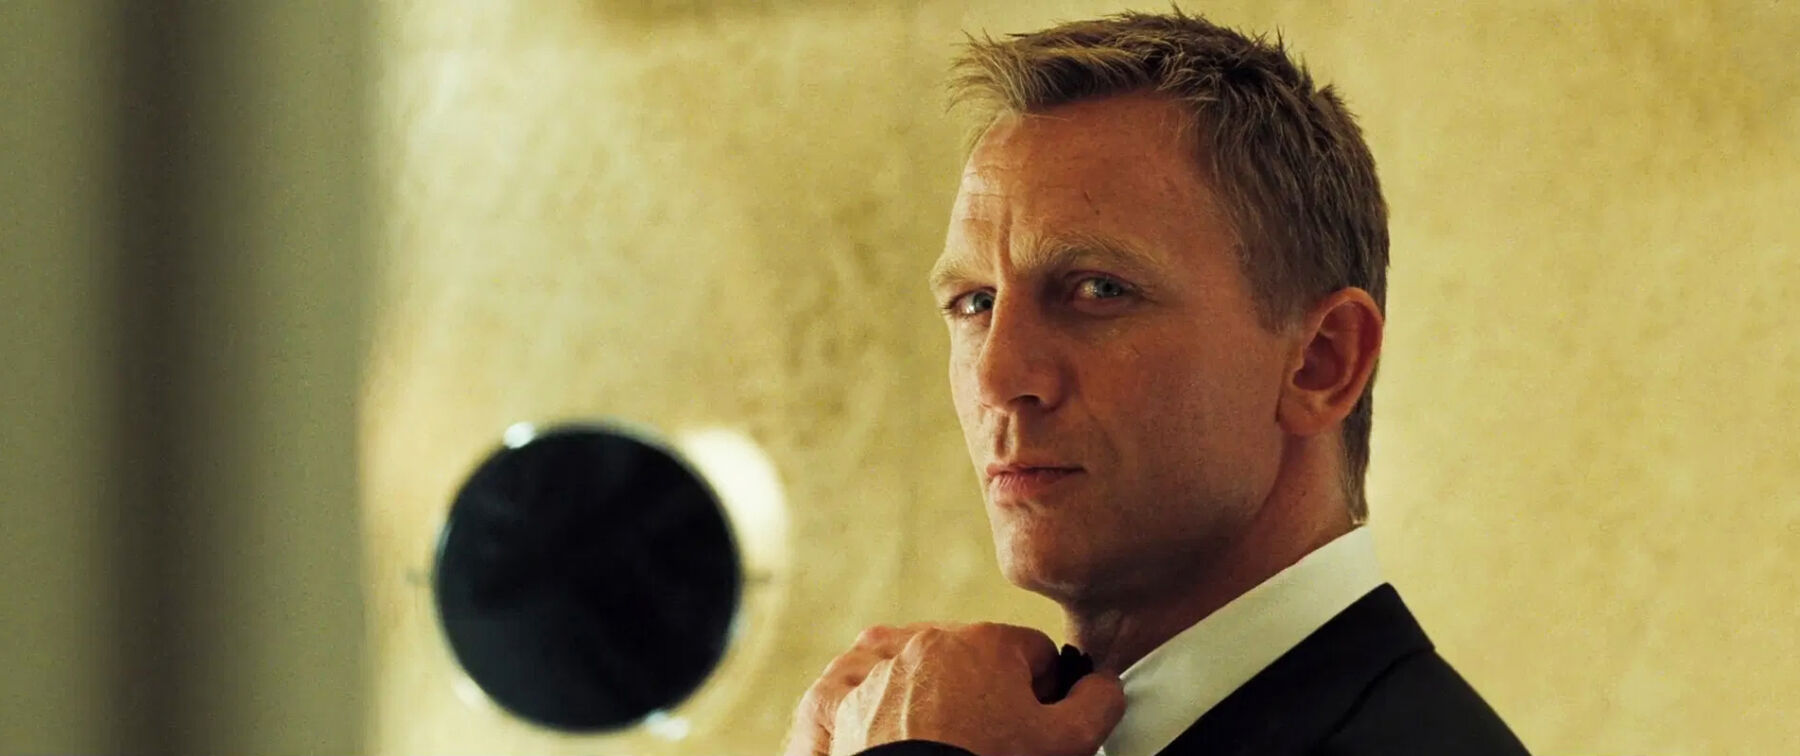 james bond aftershave daniel craig in bathroom in casino royale